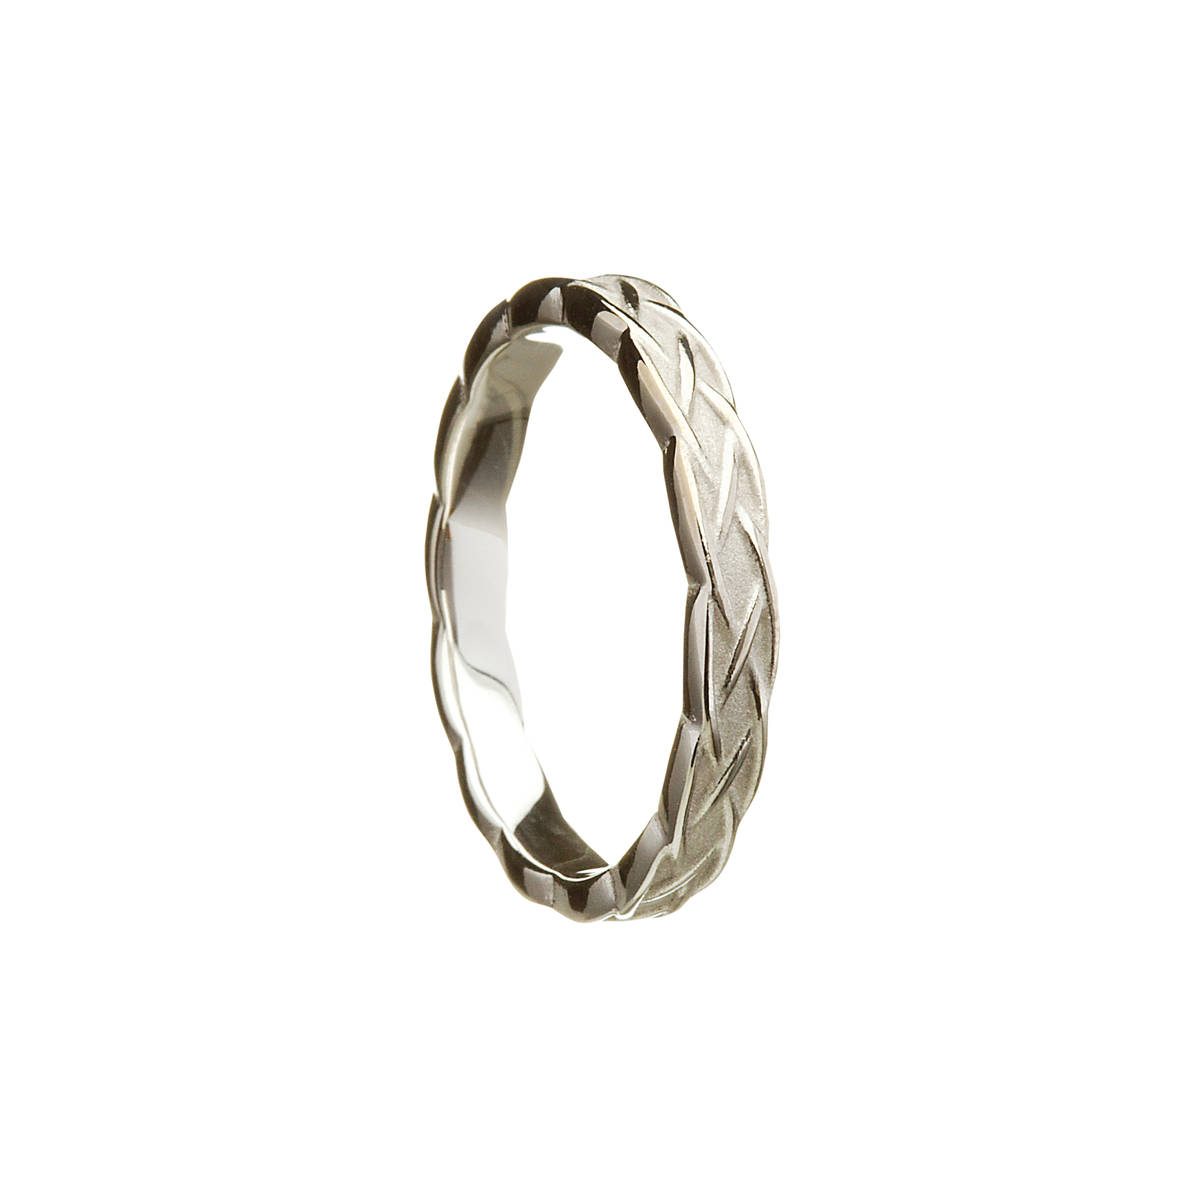 14ct White Gold Celtic Knot Gents Wedding Band.  Width: 3.9 mm